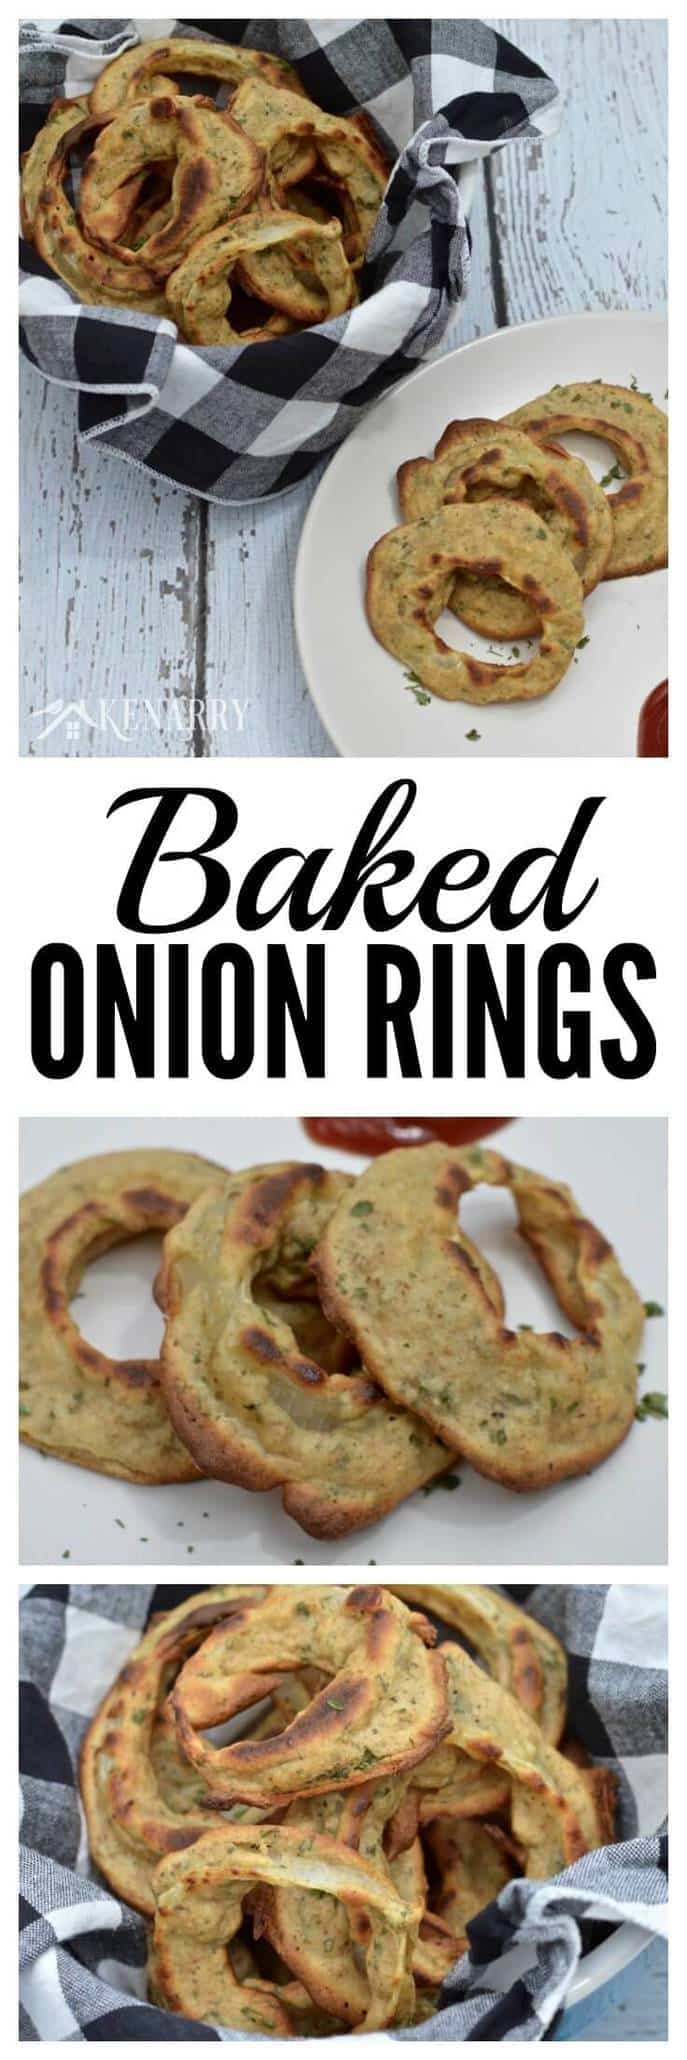 Homemade baked onion rings - how to make this healthy appetizer.